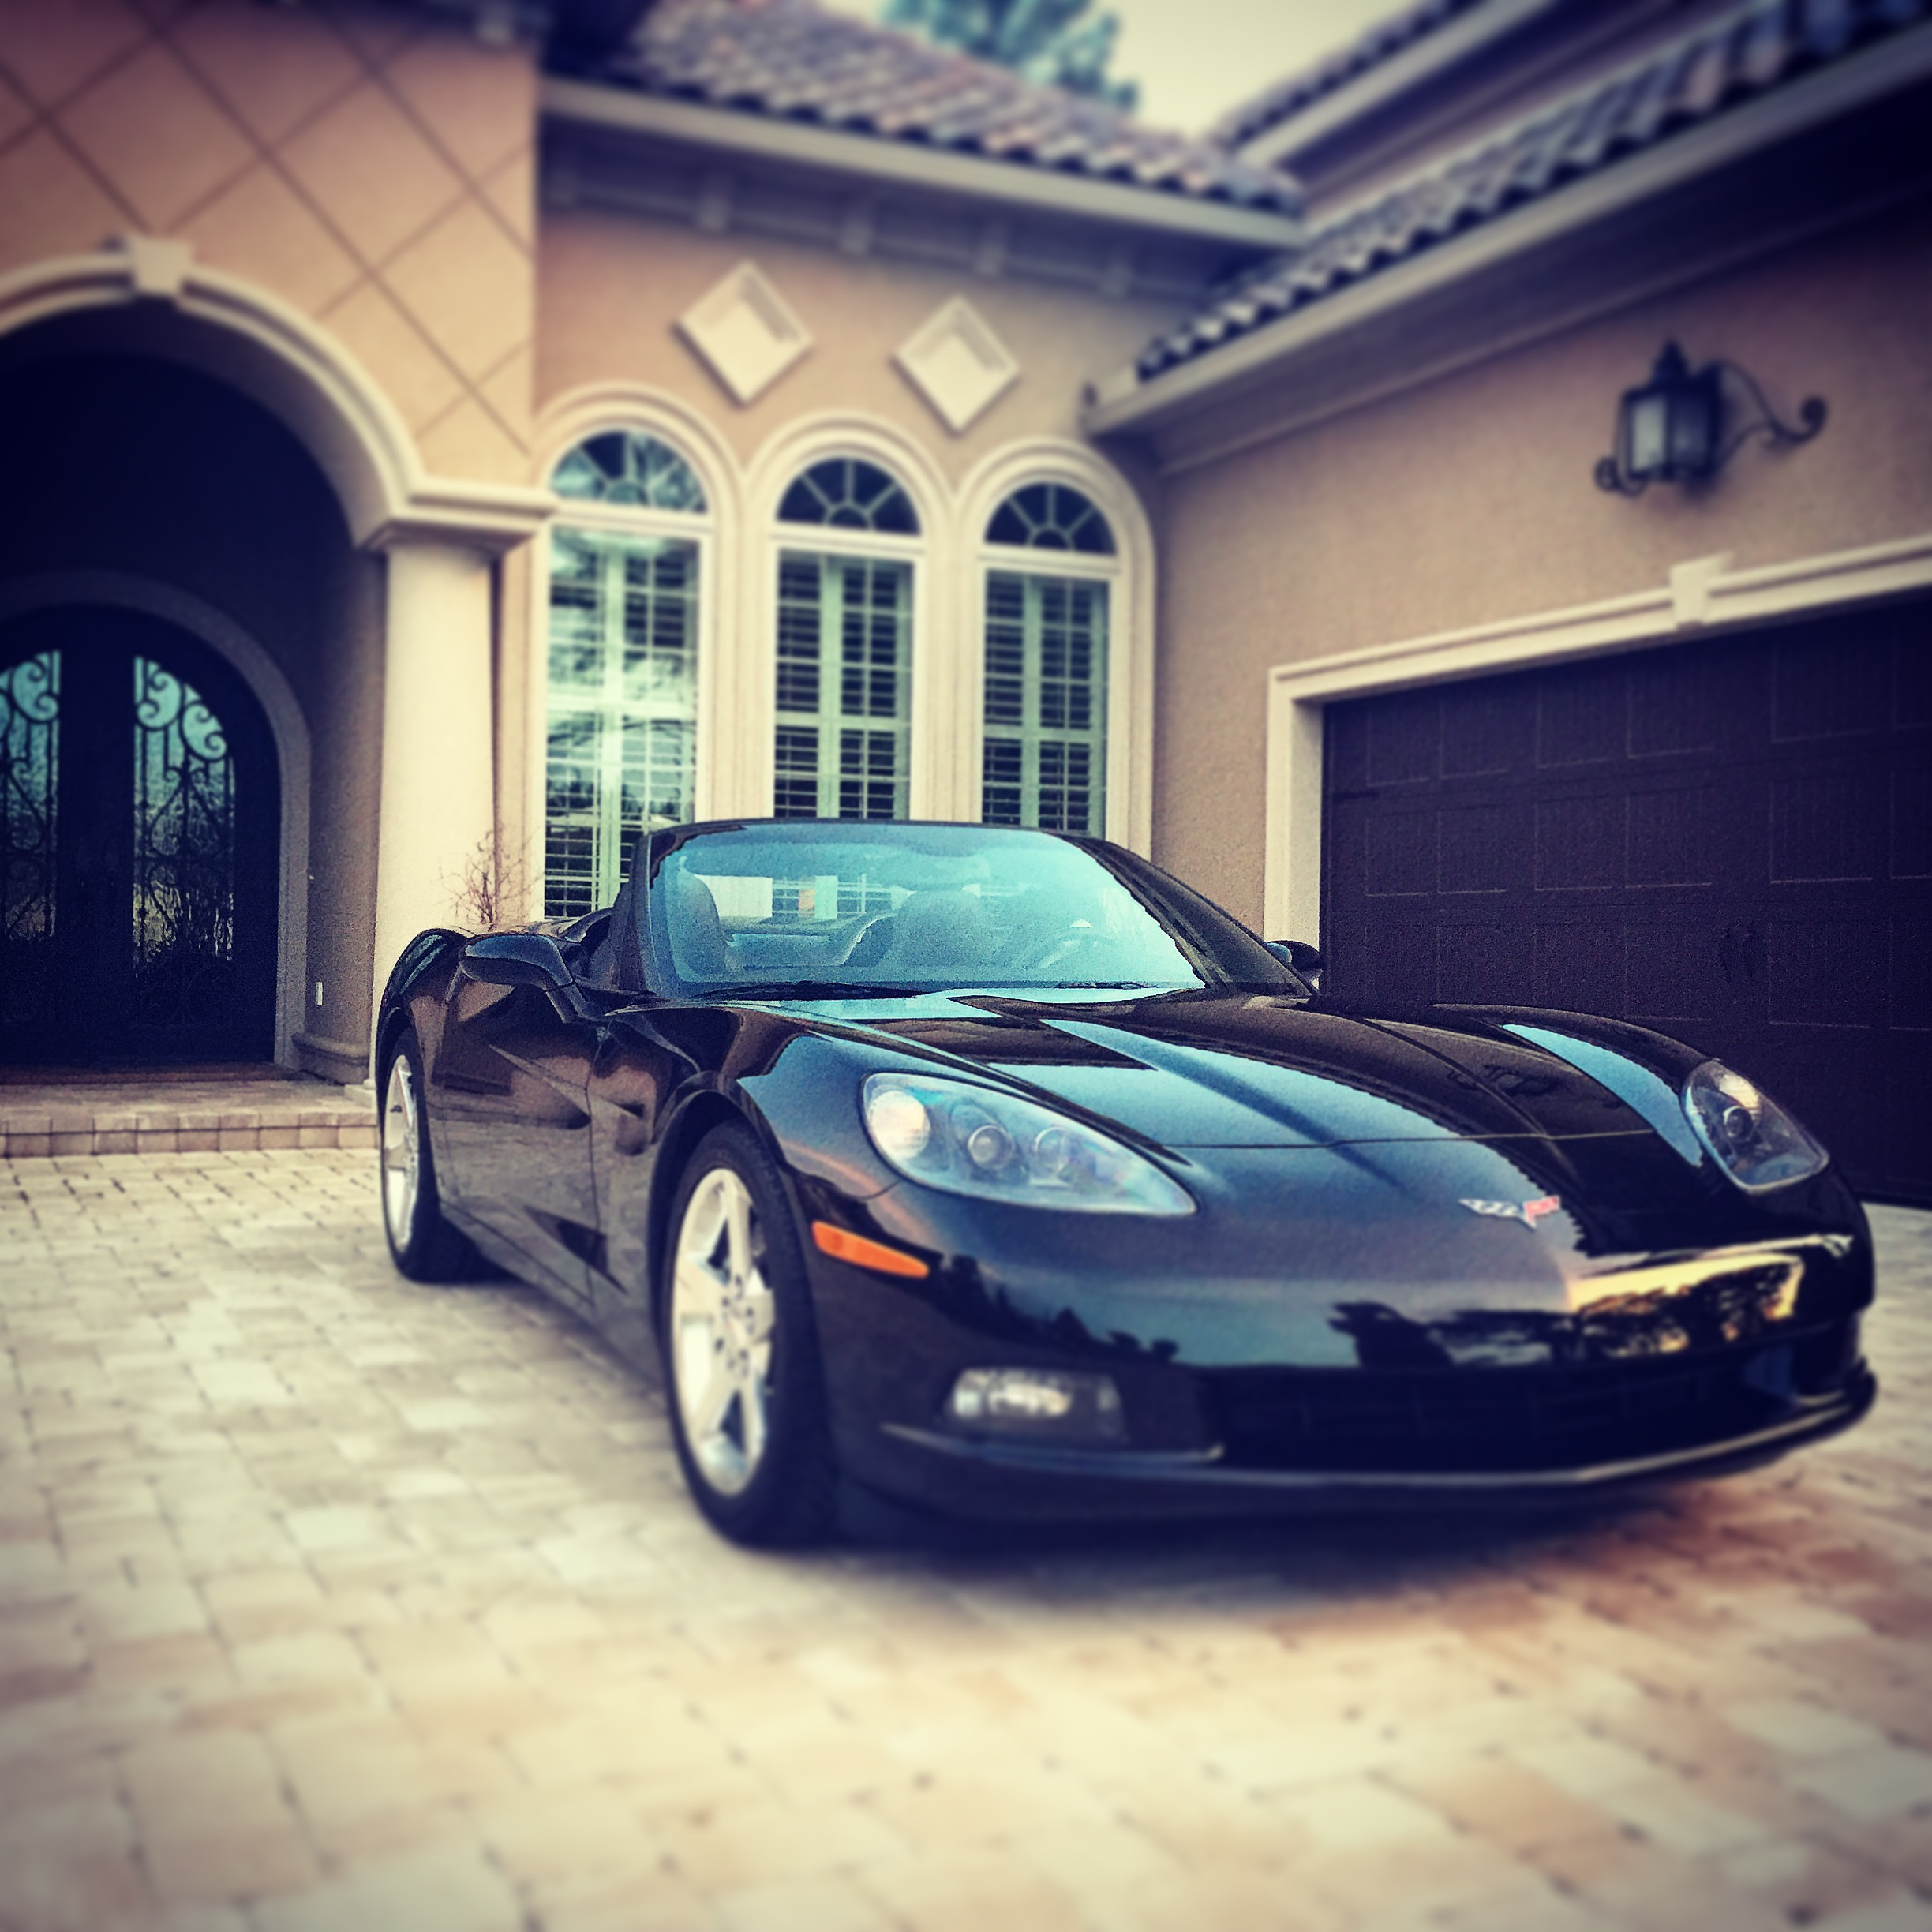 Want a Corvette? Want a nice house? Work hard and get paid.